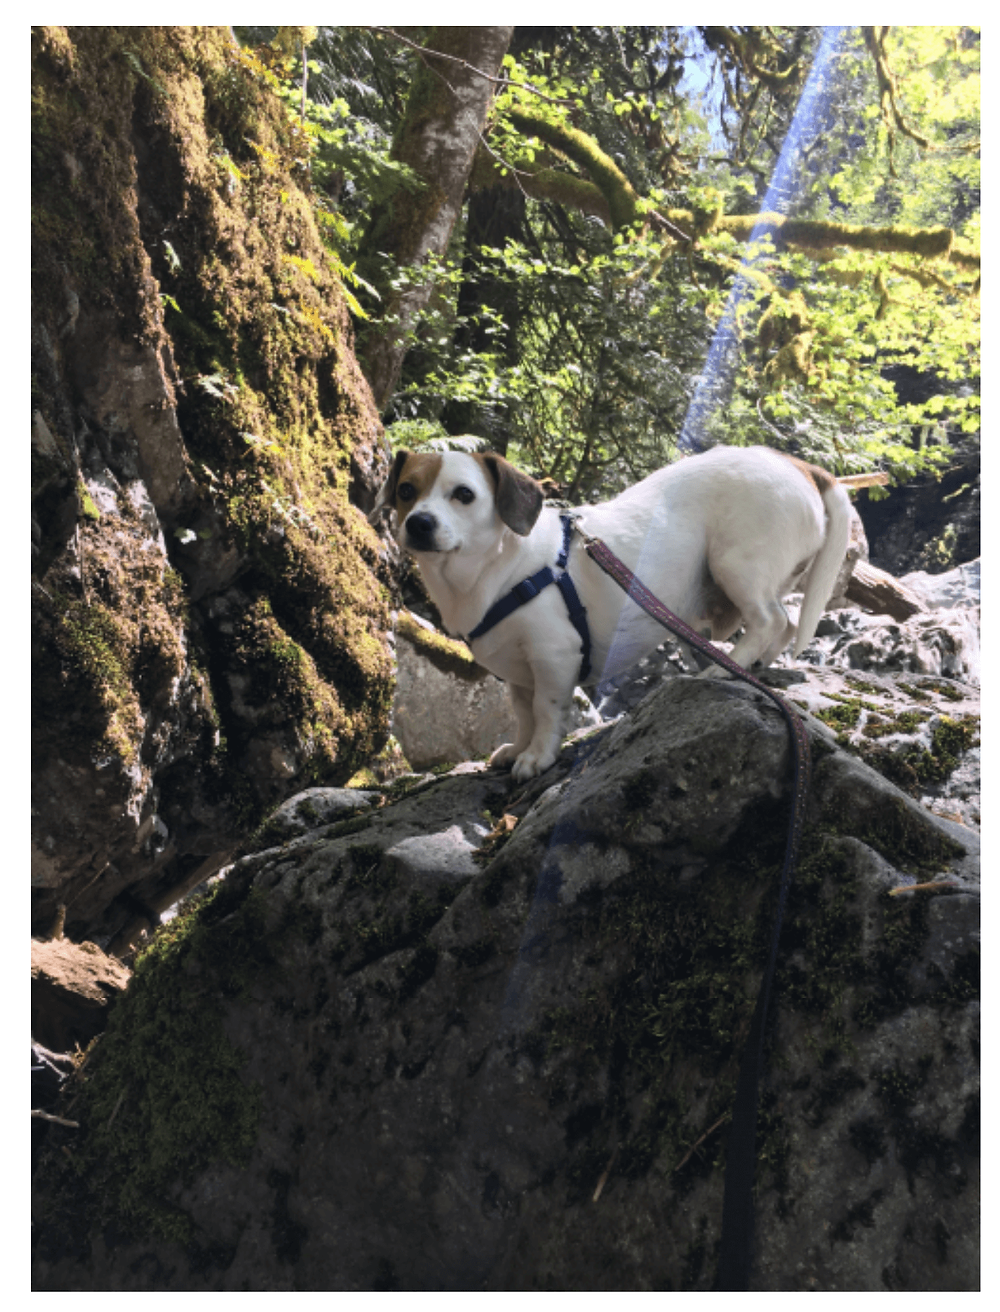 Jack Russel Terrier outside on rocks